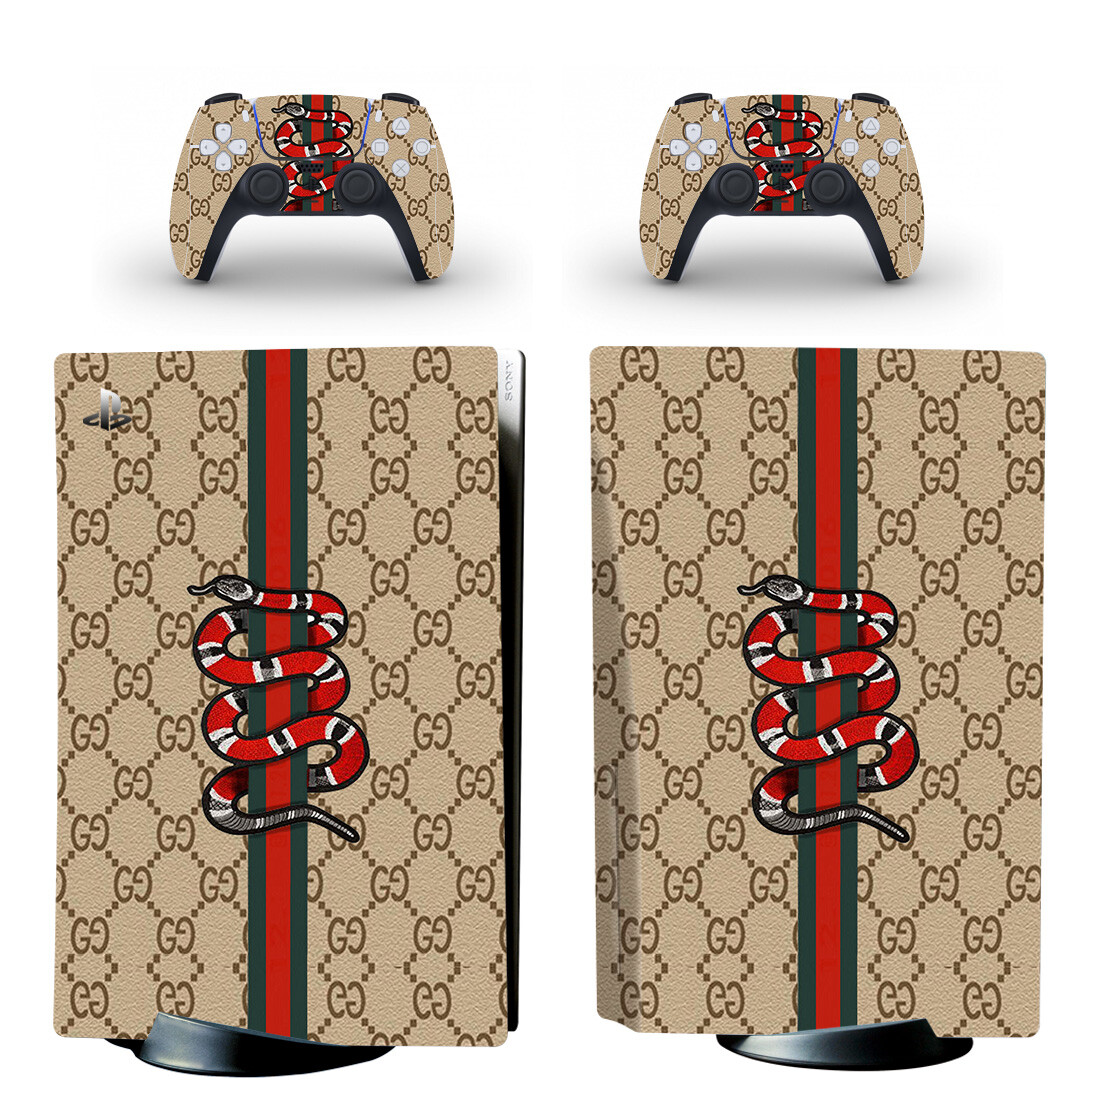 Gucci Drum Kit Wallpaper Skin Sticker For PS5 Skin And Controllers